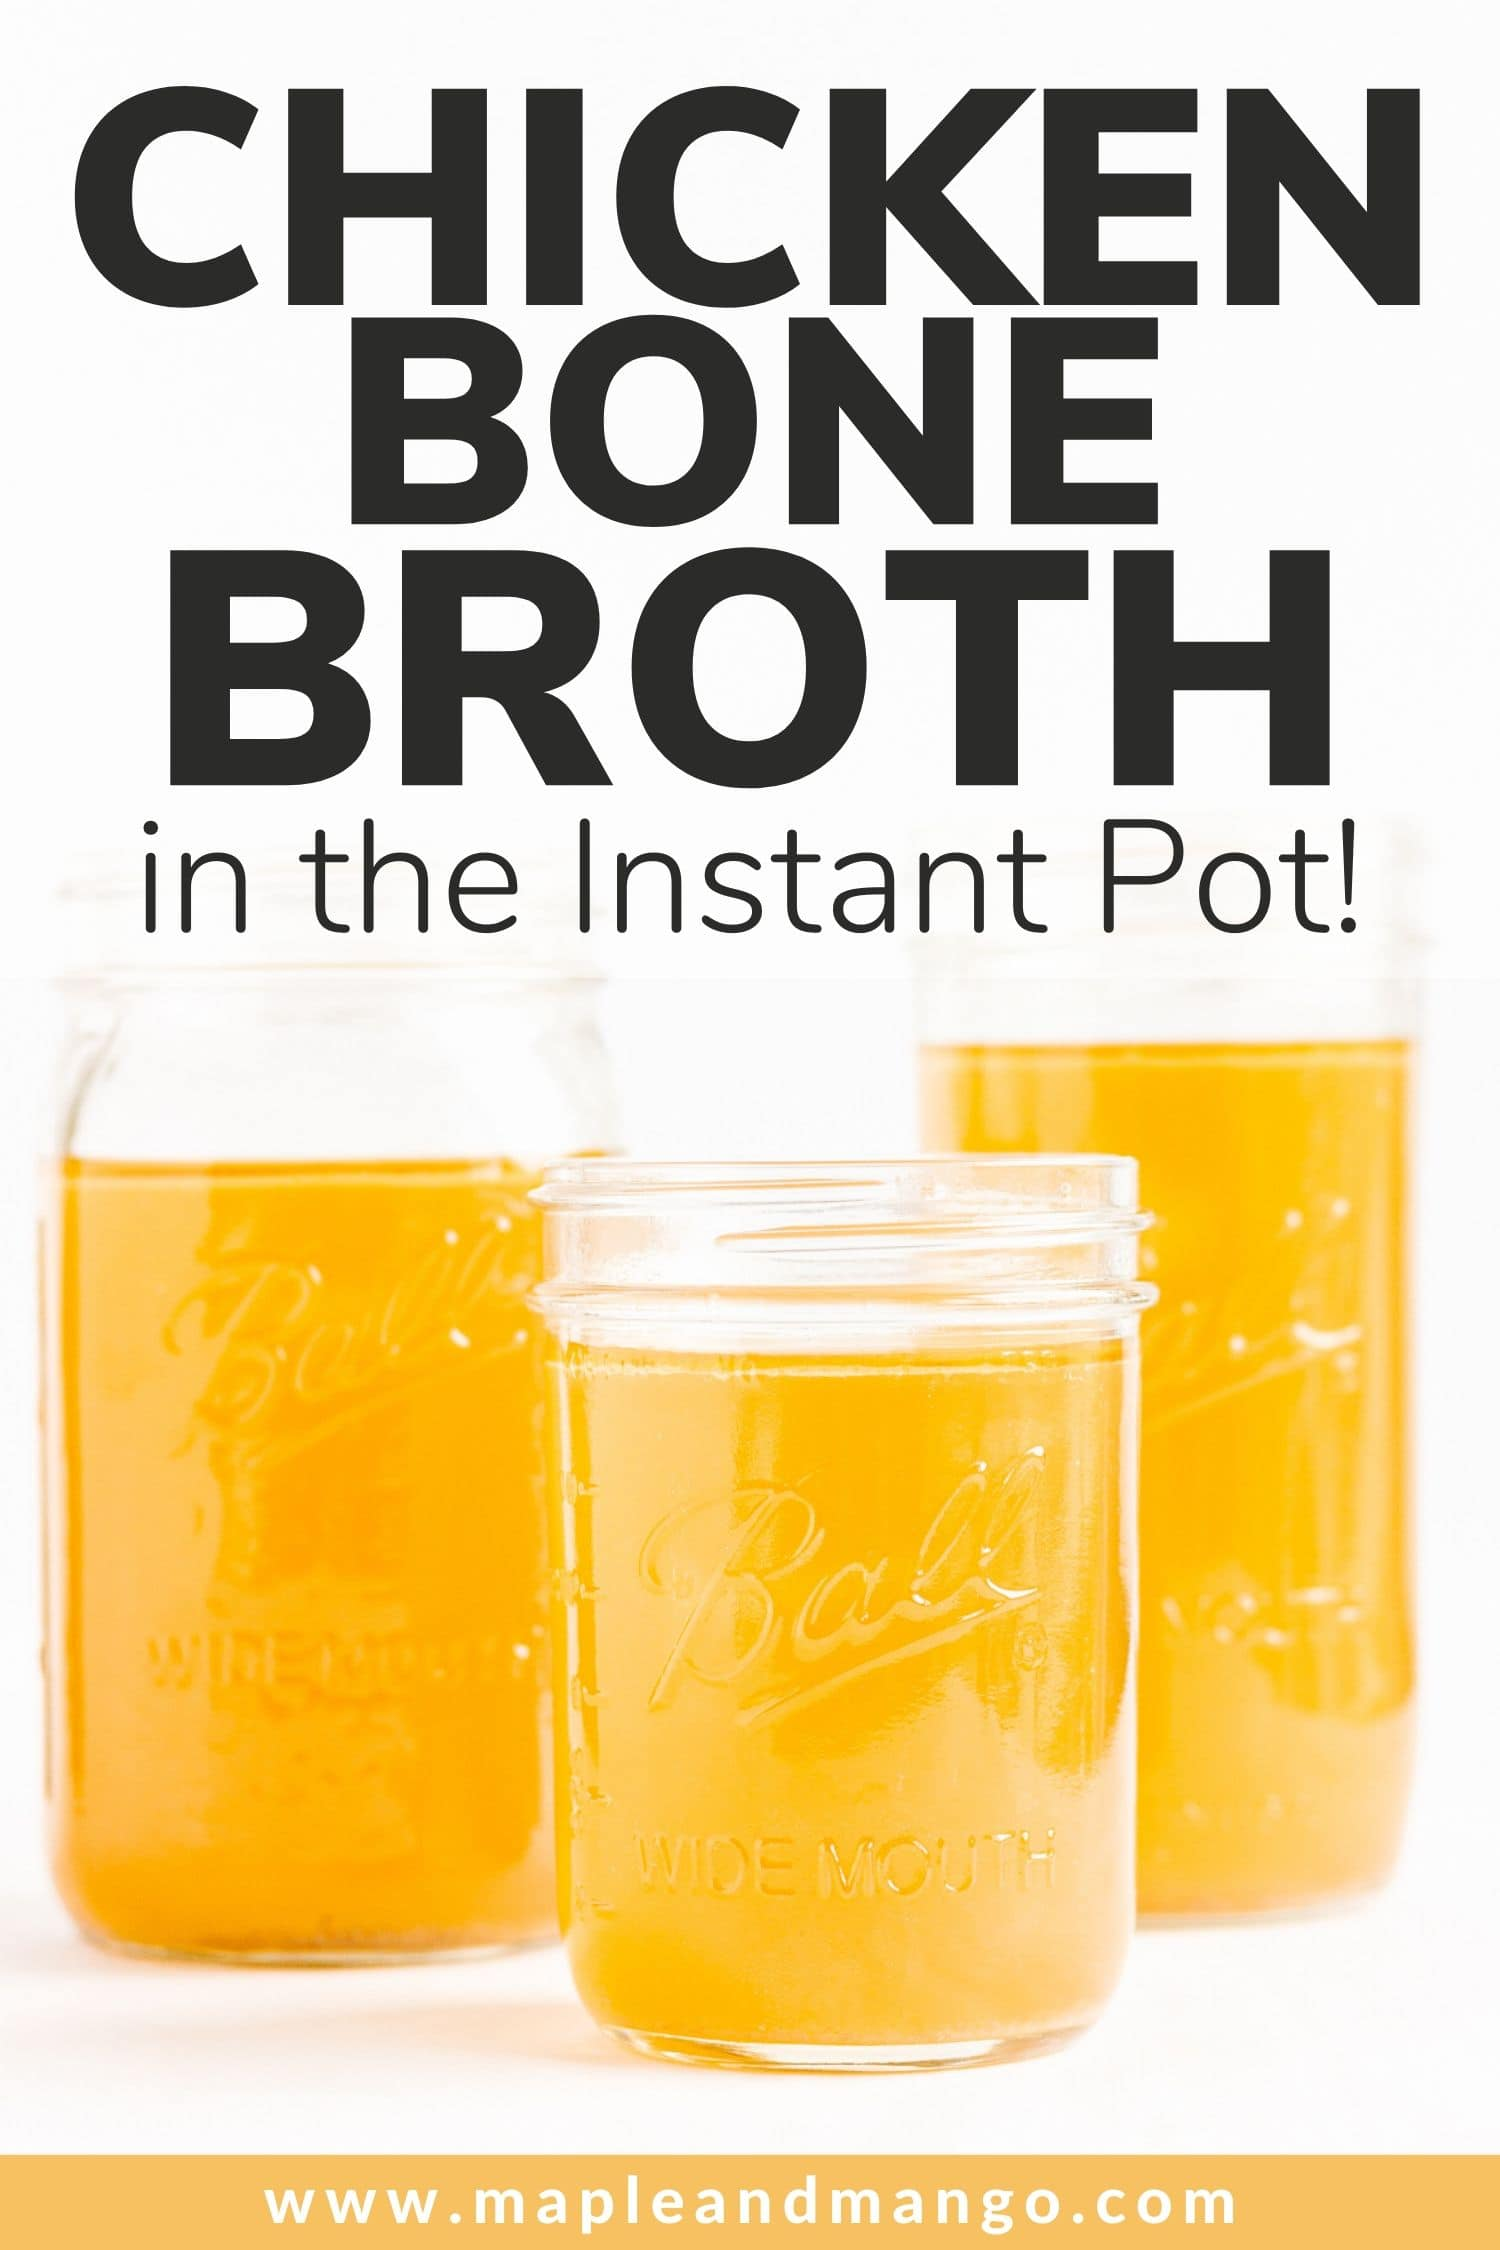 Three mason jars of chicken bone broth with text overlay for Pinterest.